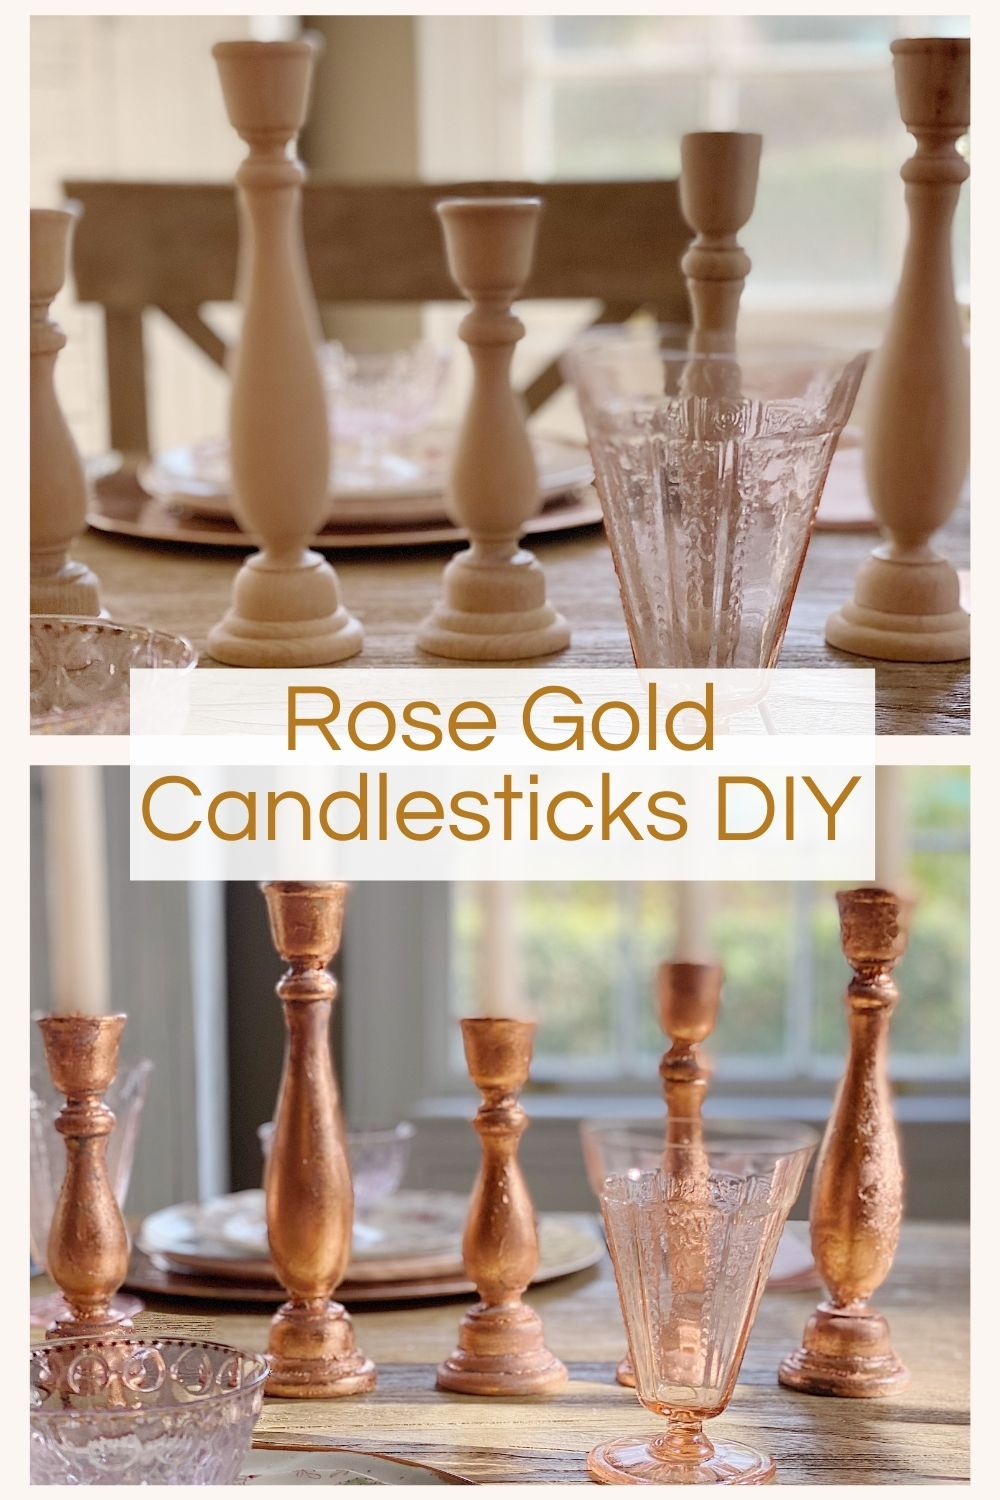 I made the most incredible Rose Gold Candlestick holders. I used wooden candlesticks and covered them with Rose Gold Metal Leaf.